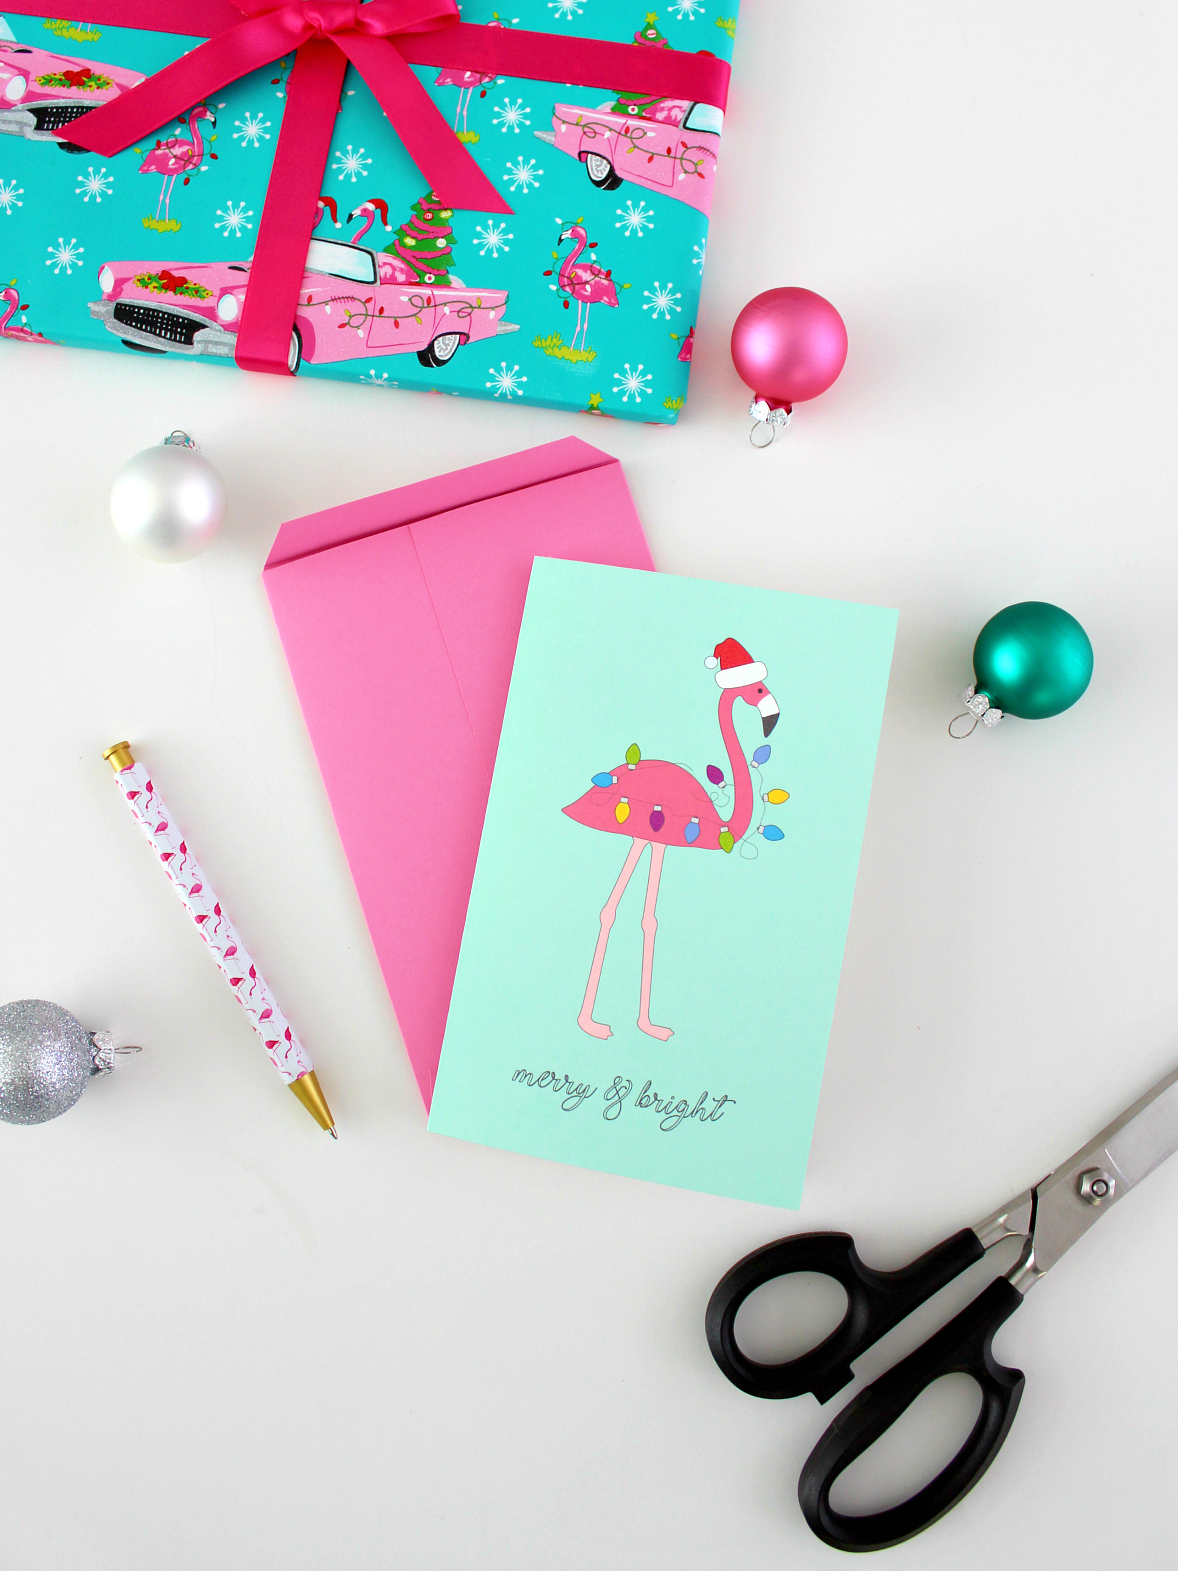 FREE PRINTABLE HOLIDAY FLAMINGO CARD